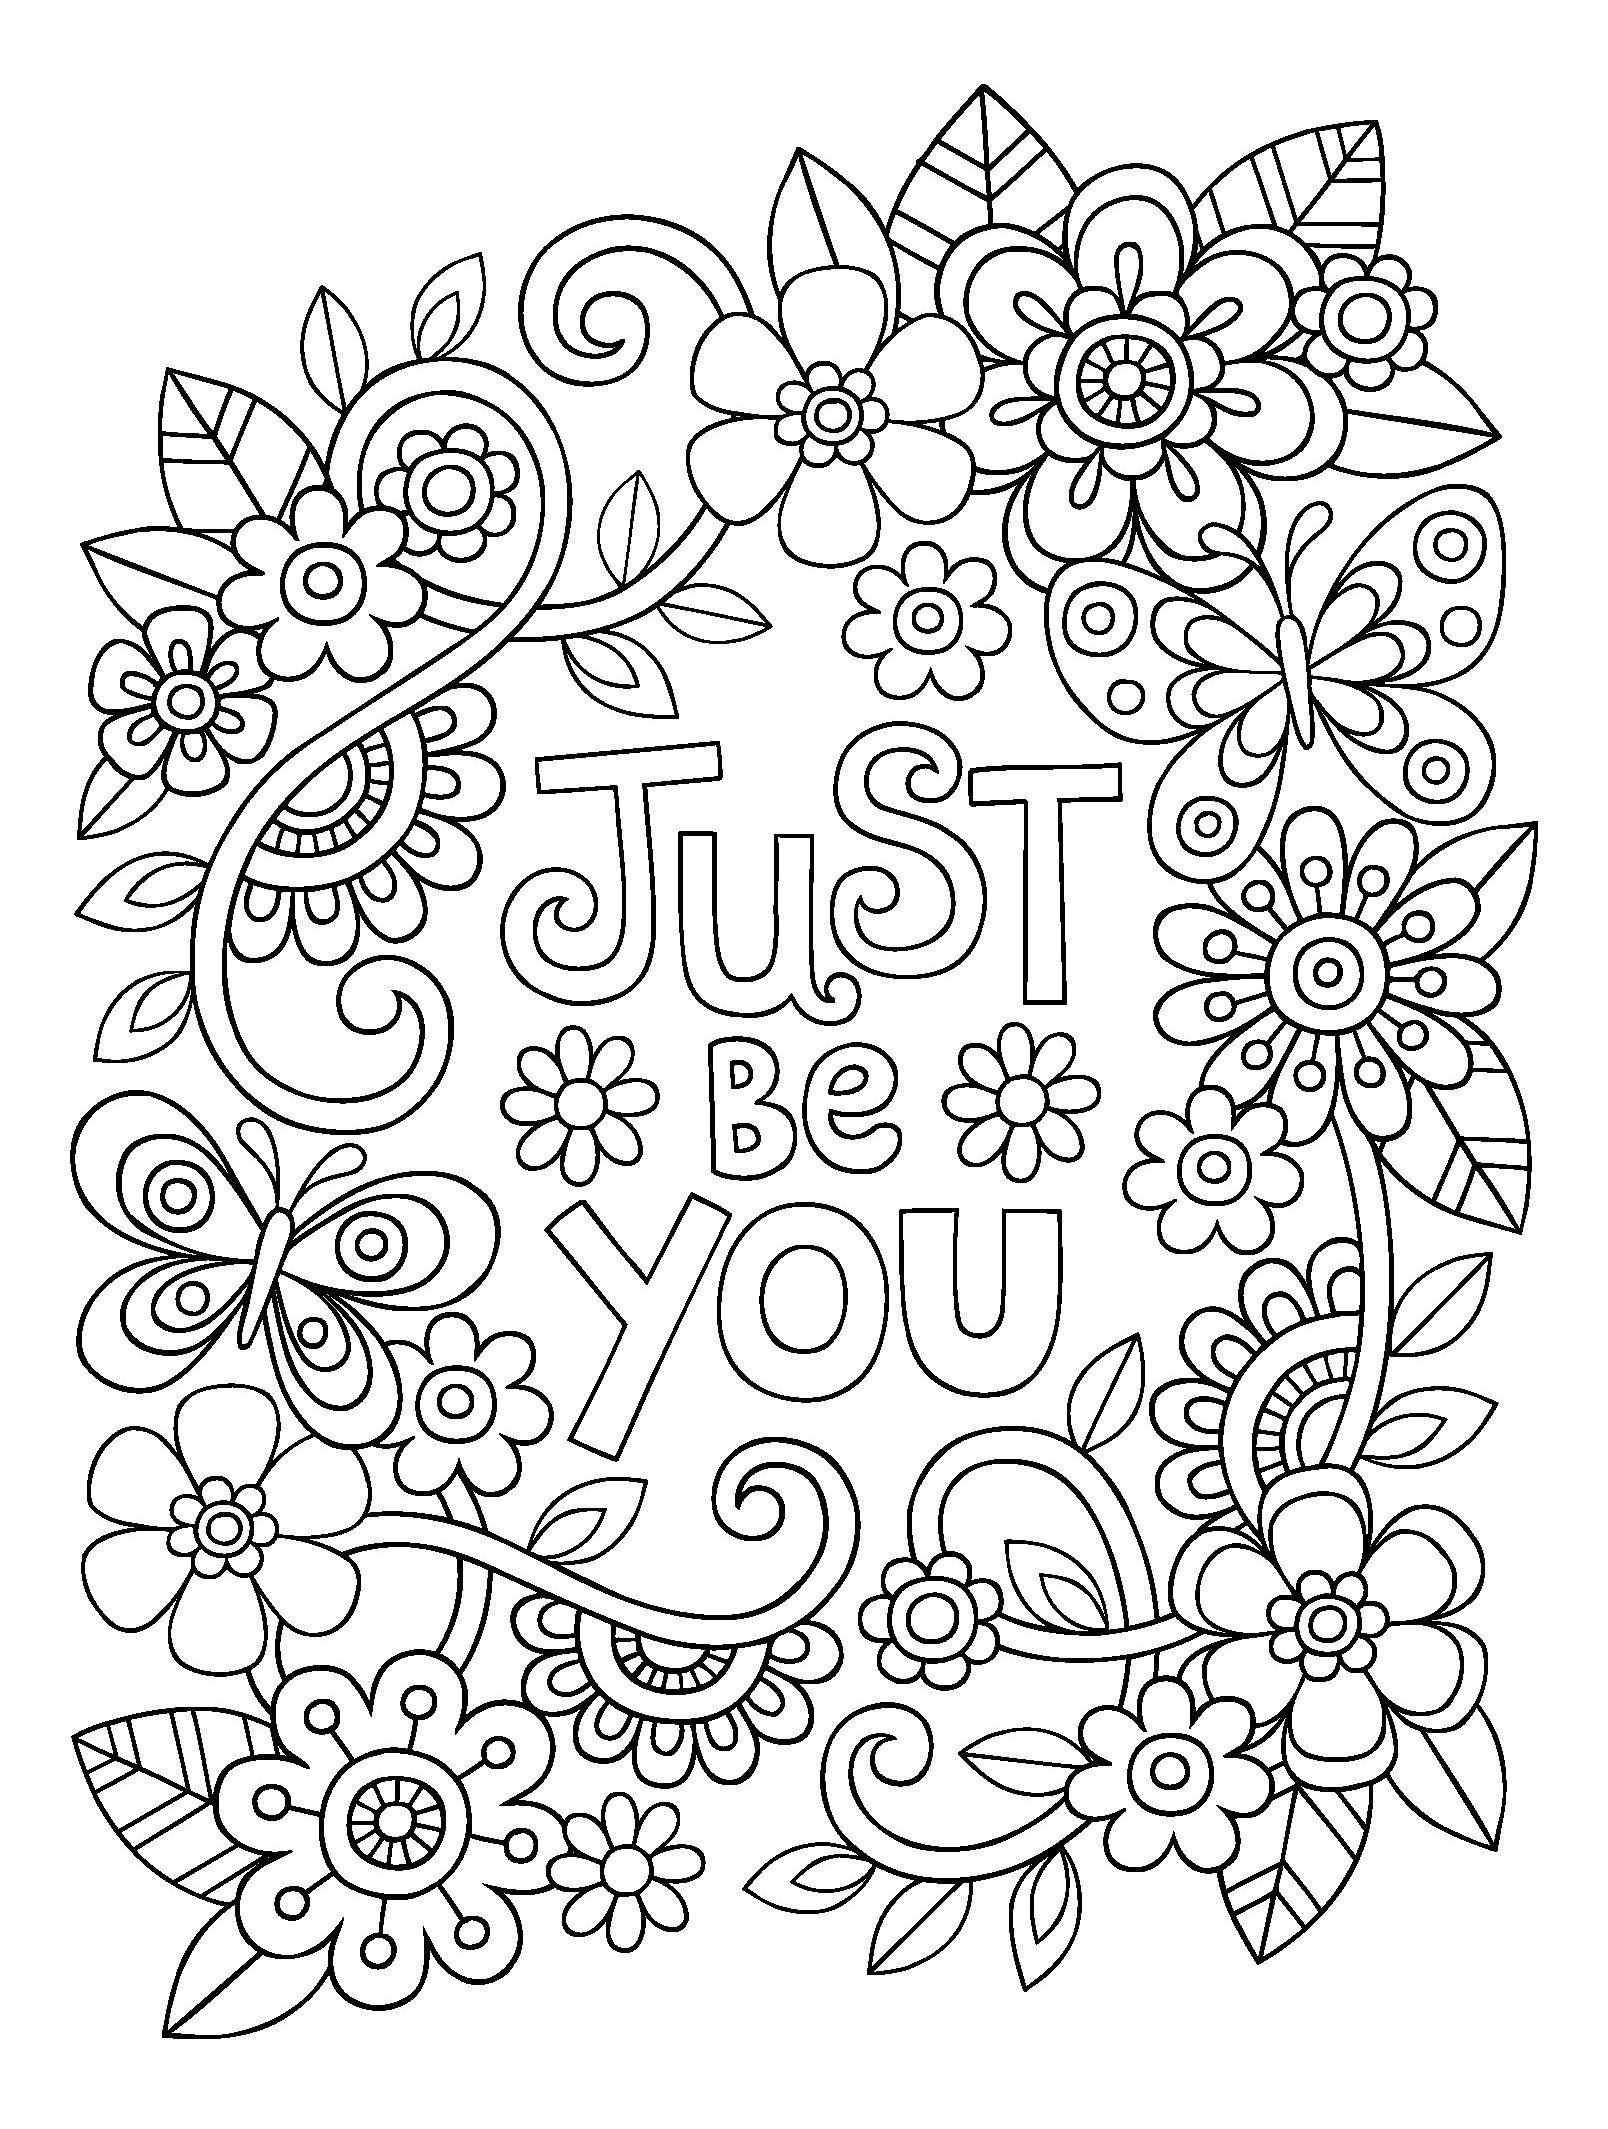 Related image Quote coloring pages, Coloring pages